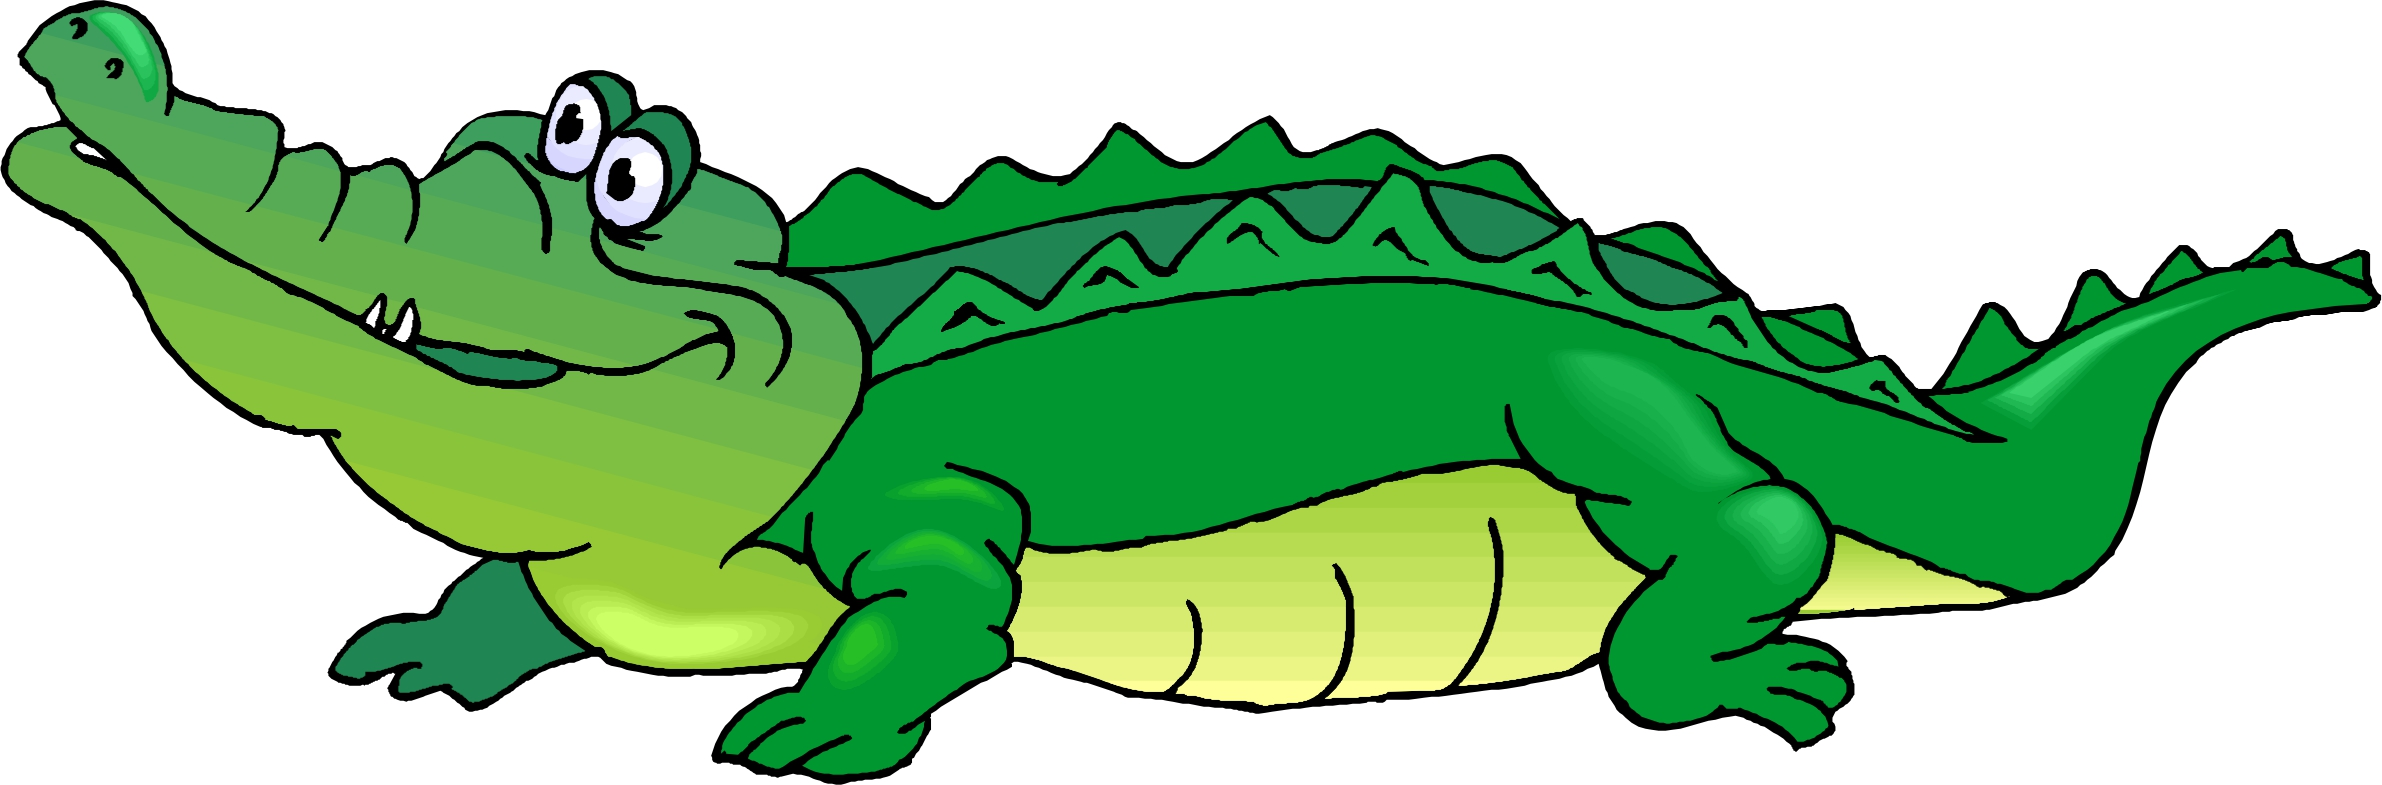 Sick clipart crocodile #14